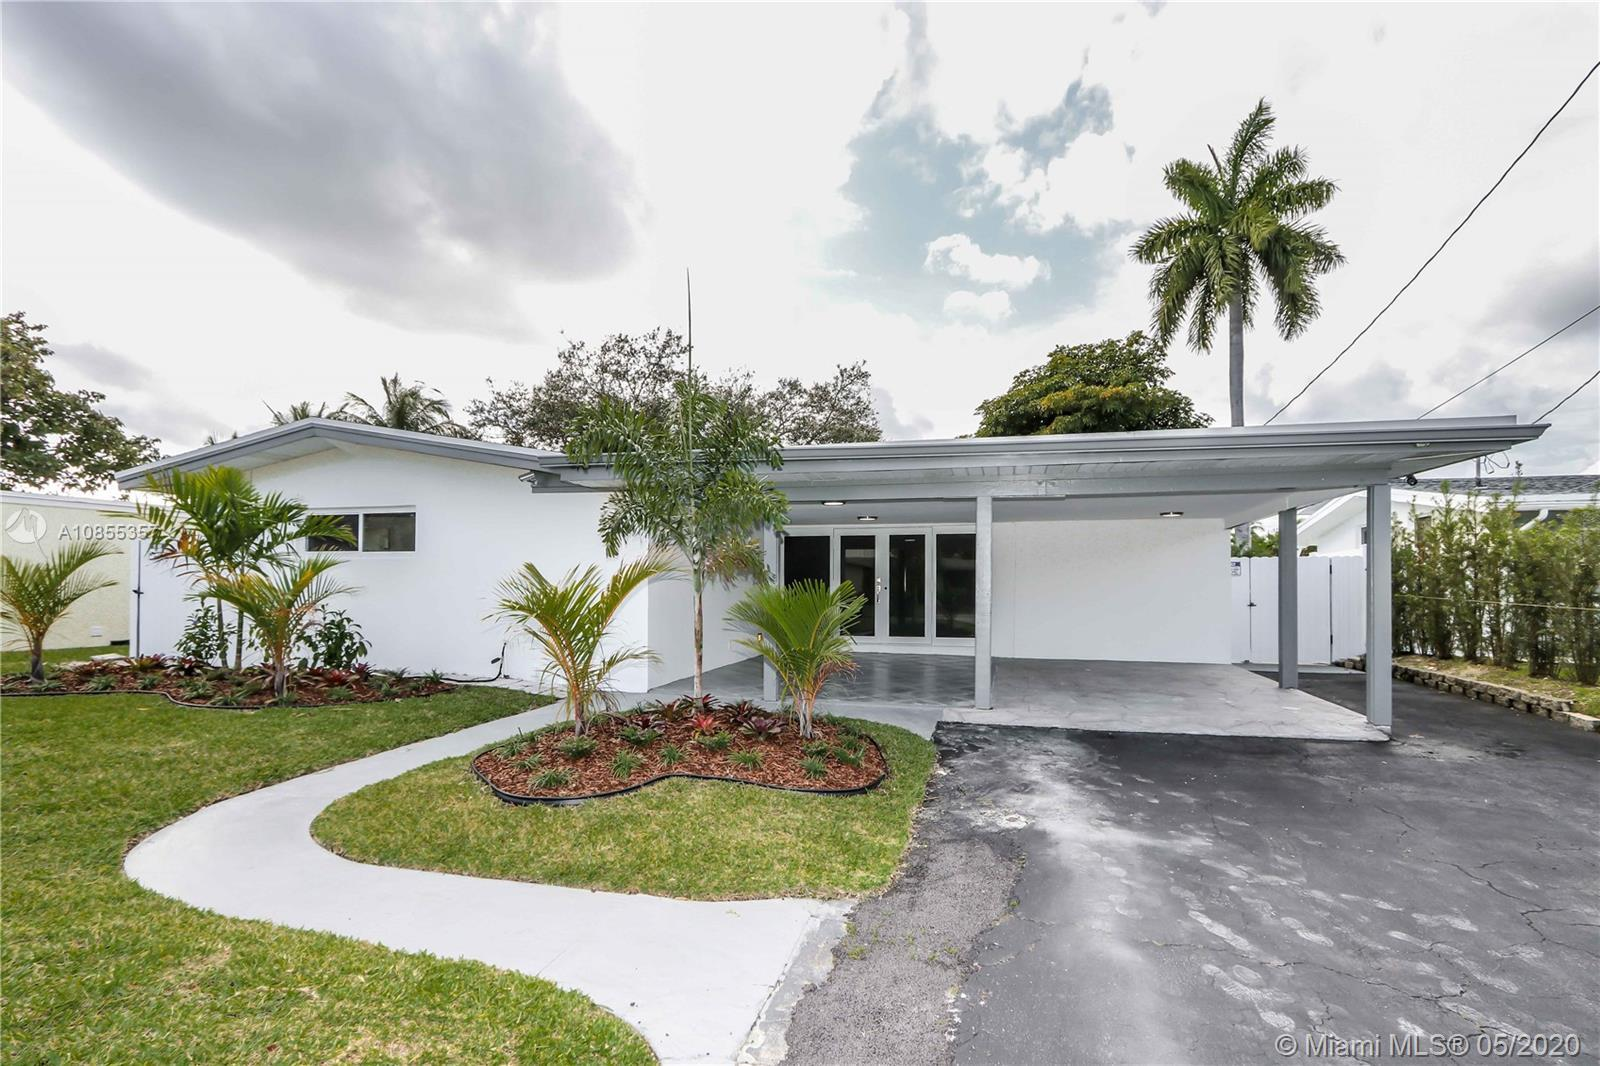 Come see this beautiful 4 bedroom / 2 bathroom located on a quiet street in Lauderdale Isles. This p